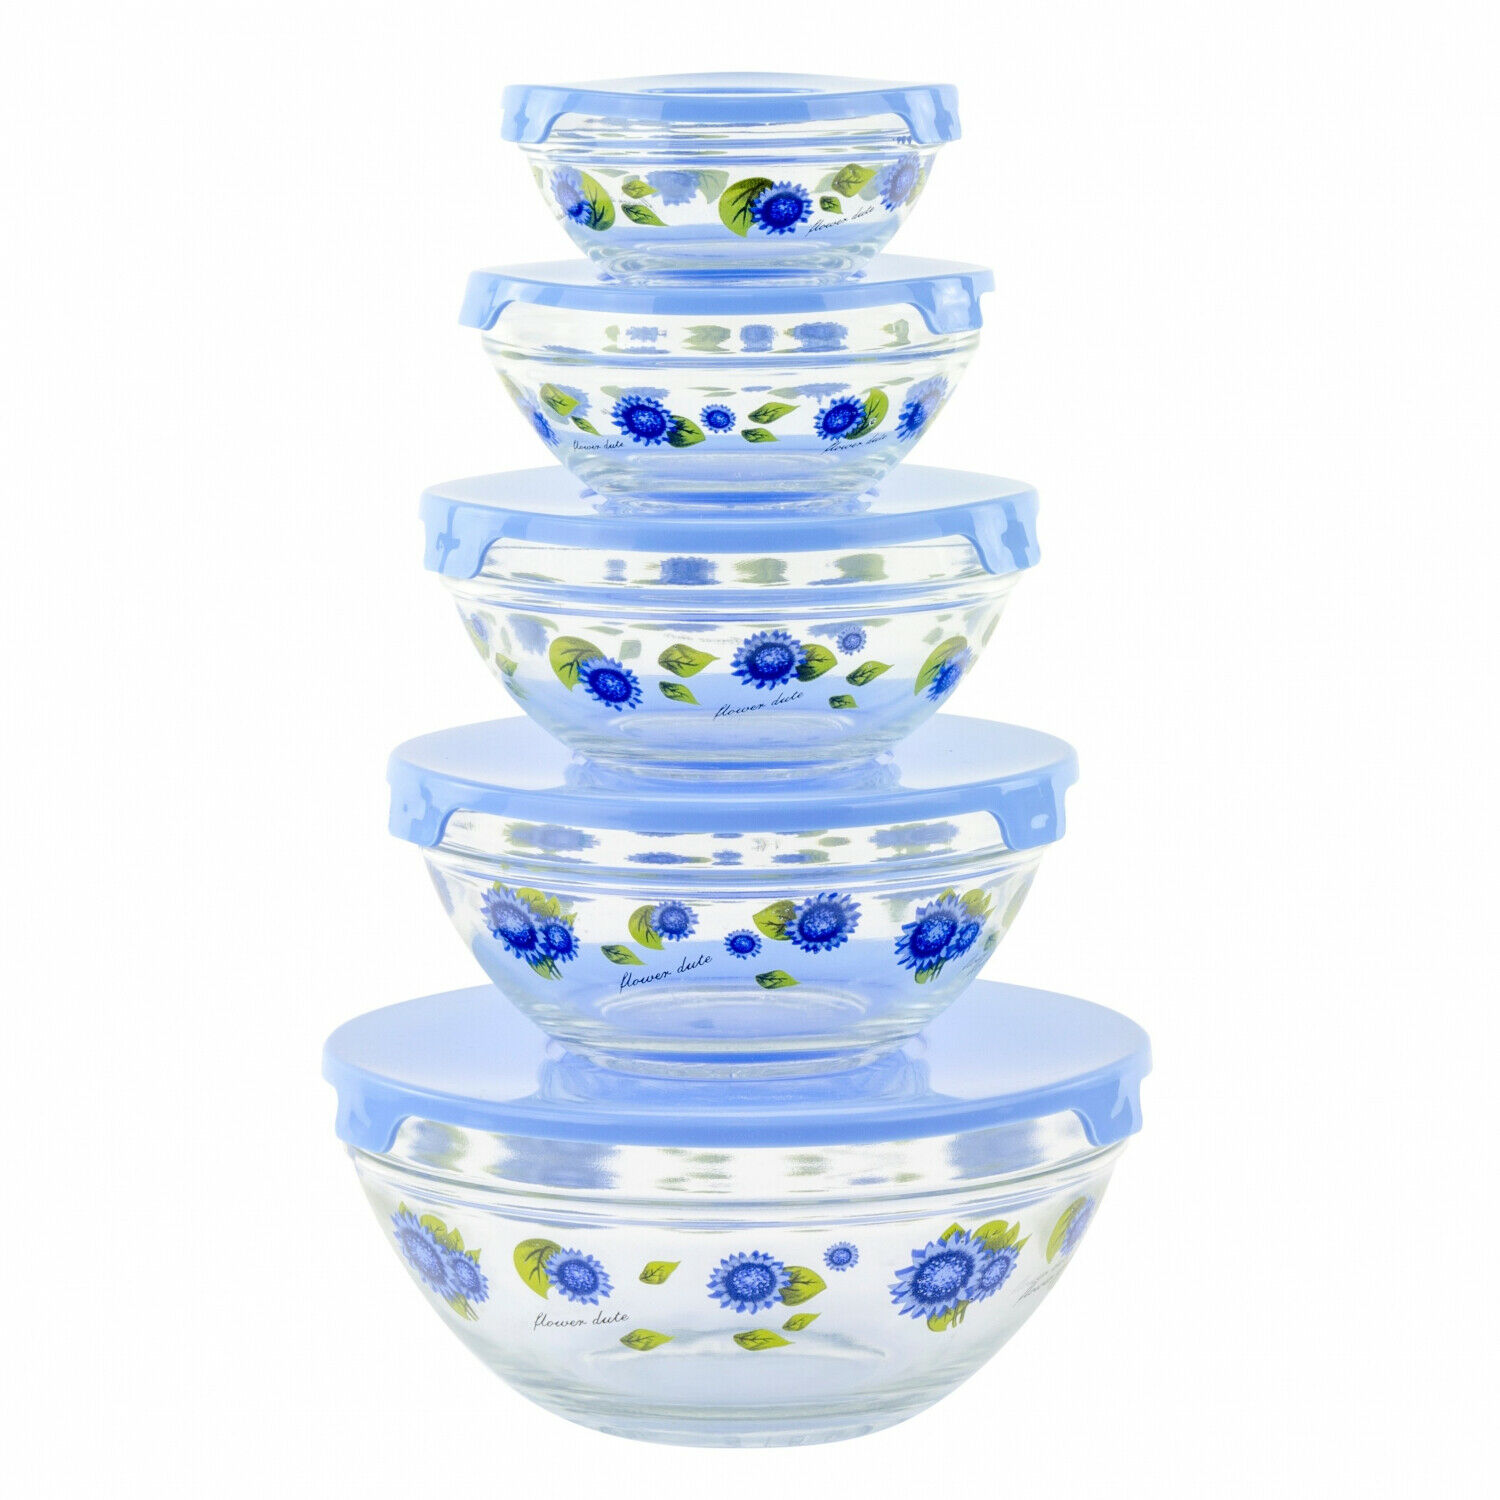 10 Piece Glass Food Storage Container Set With Lids And Flower Design 1